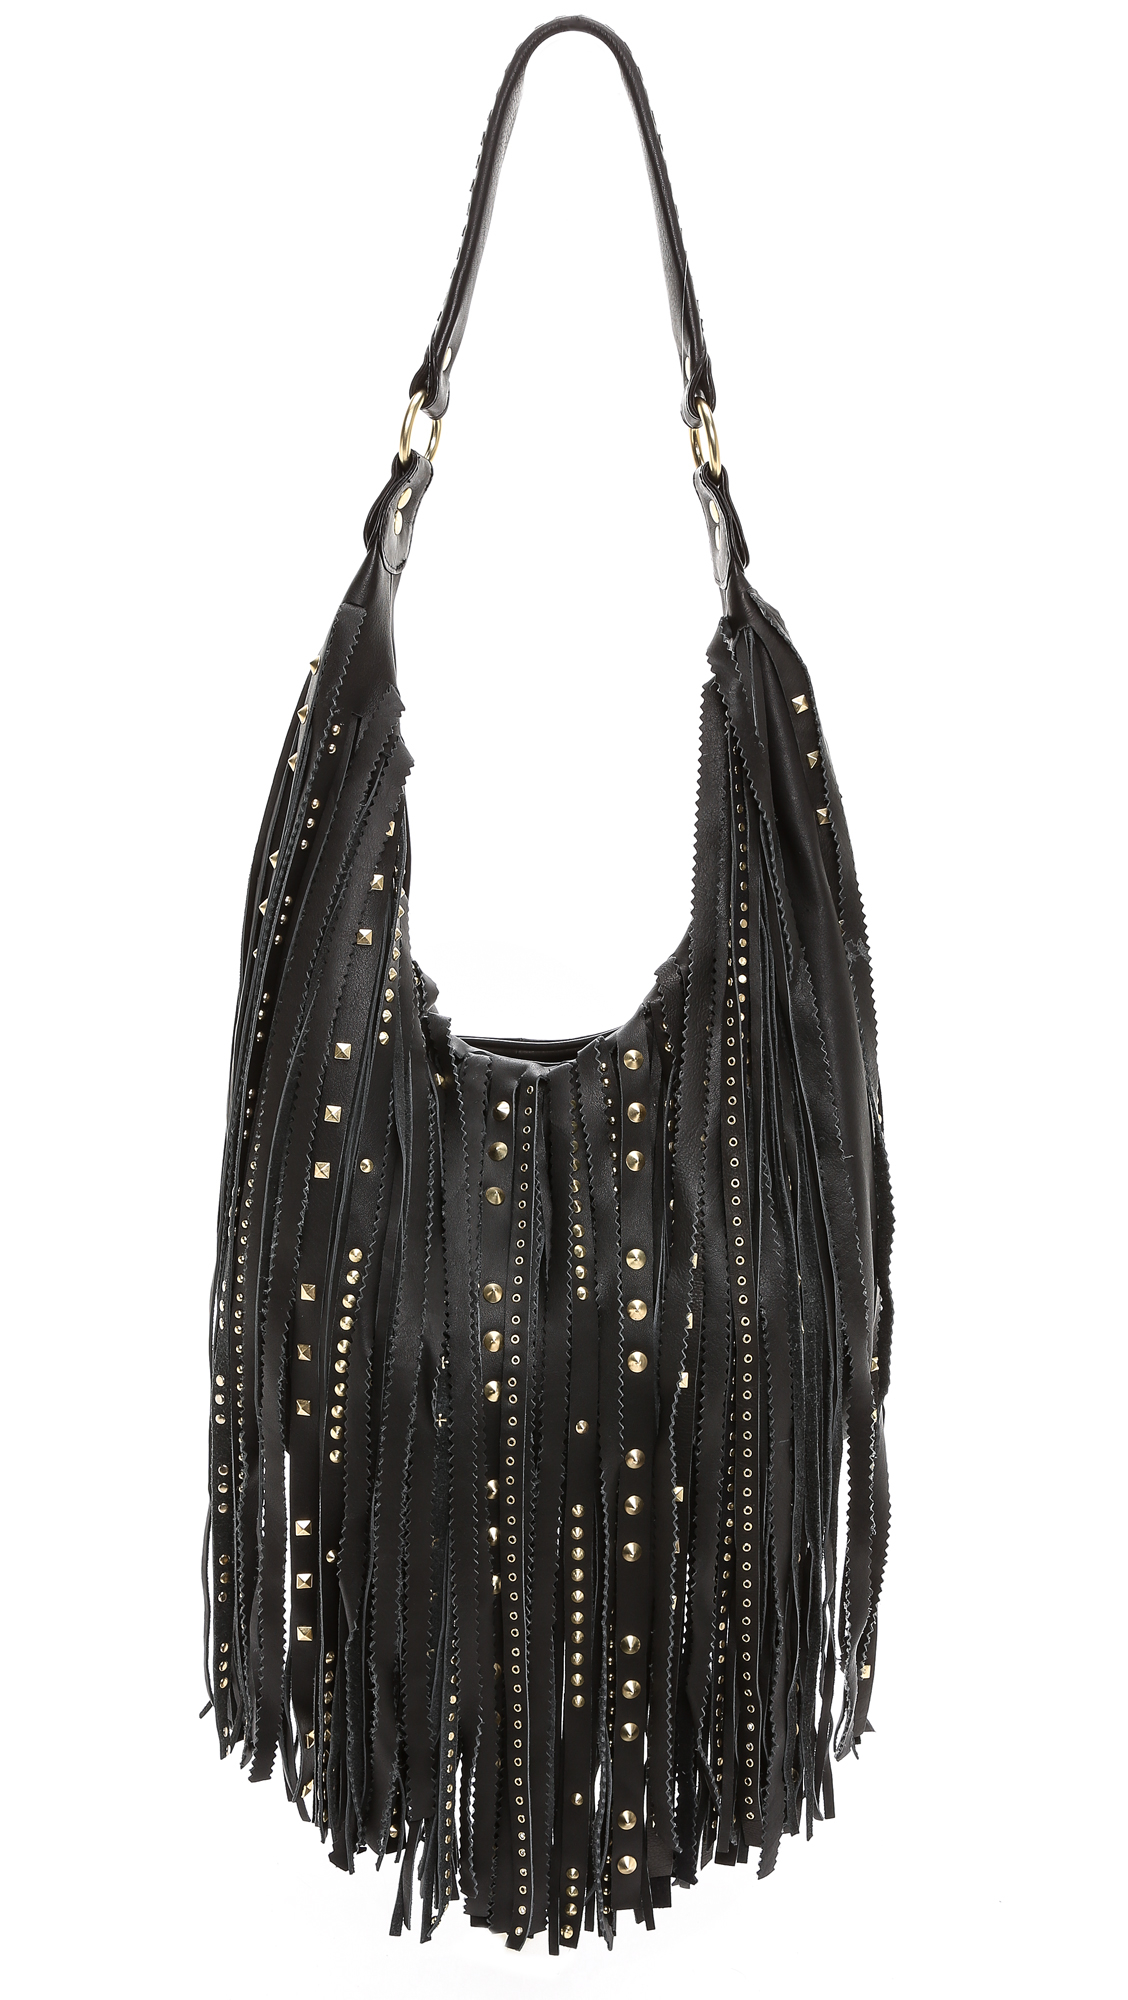 Ash Tyler Fringe Hobo Bag - Black in Black | Lyst